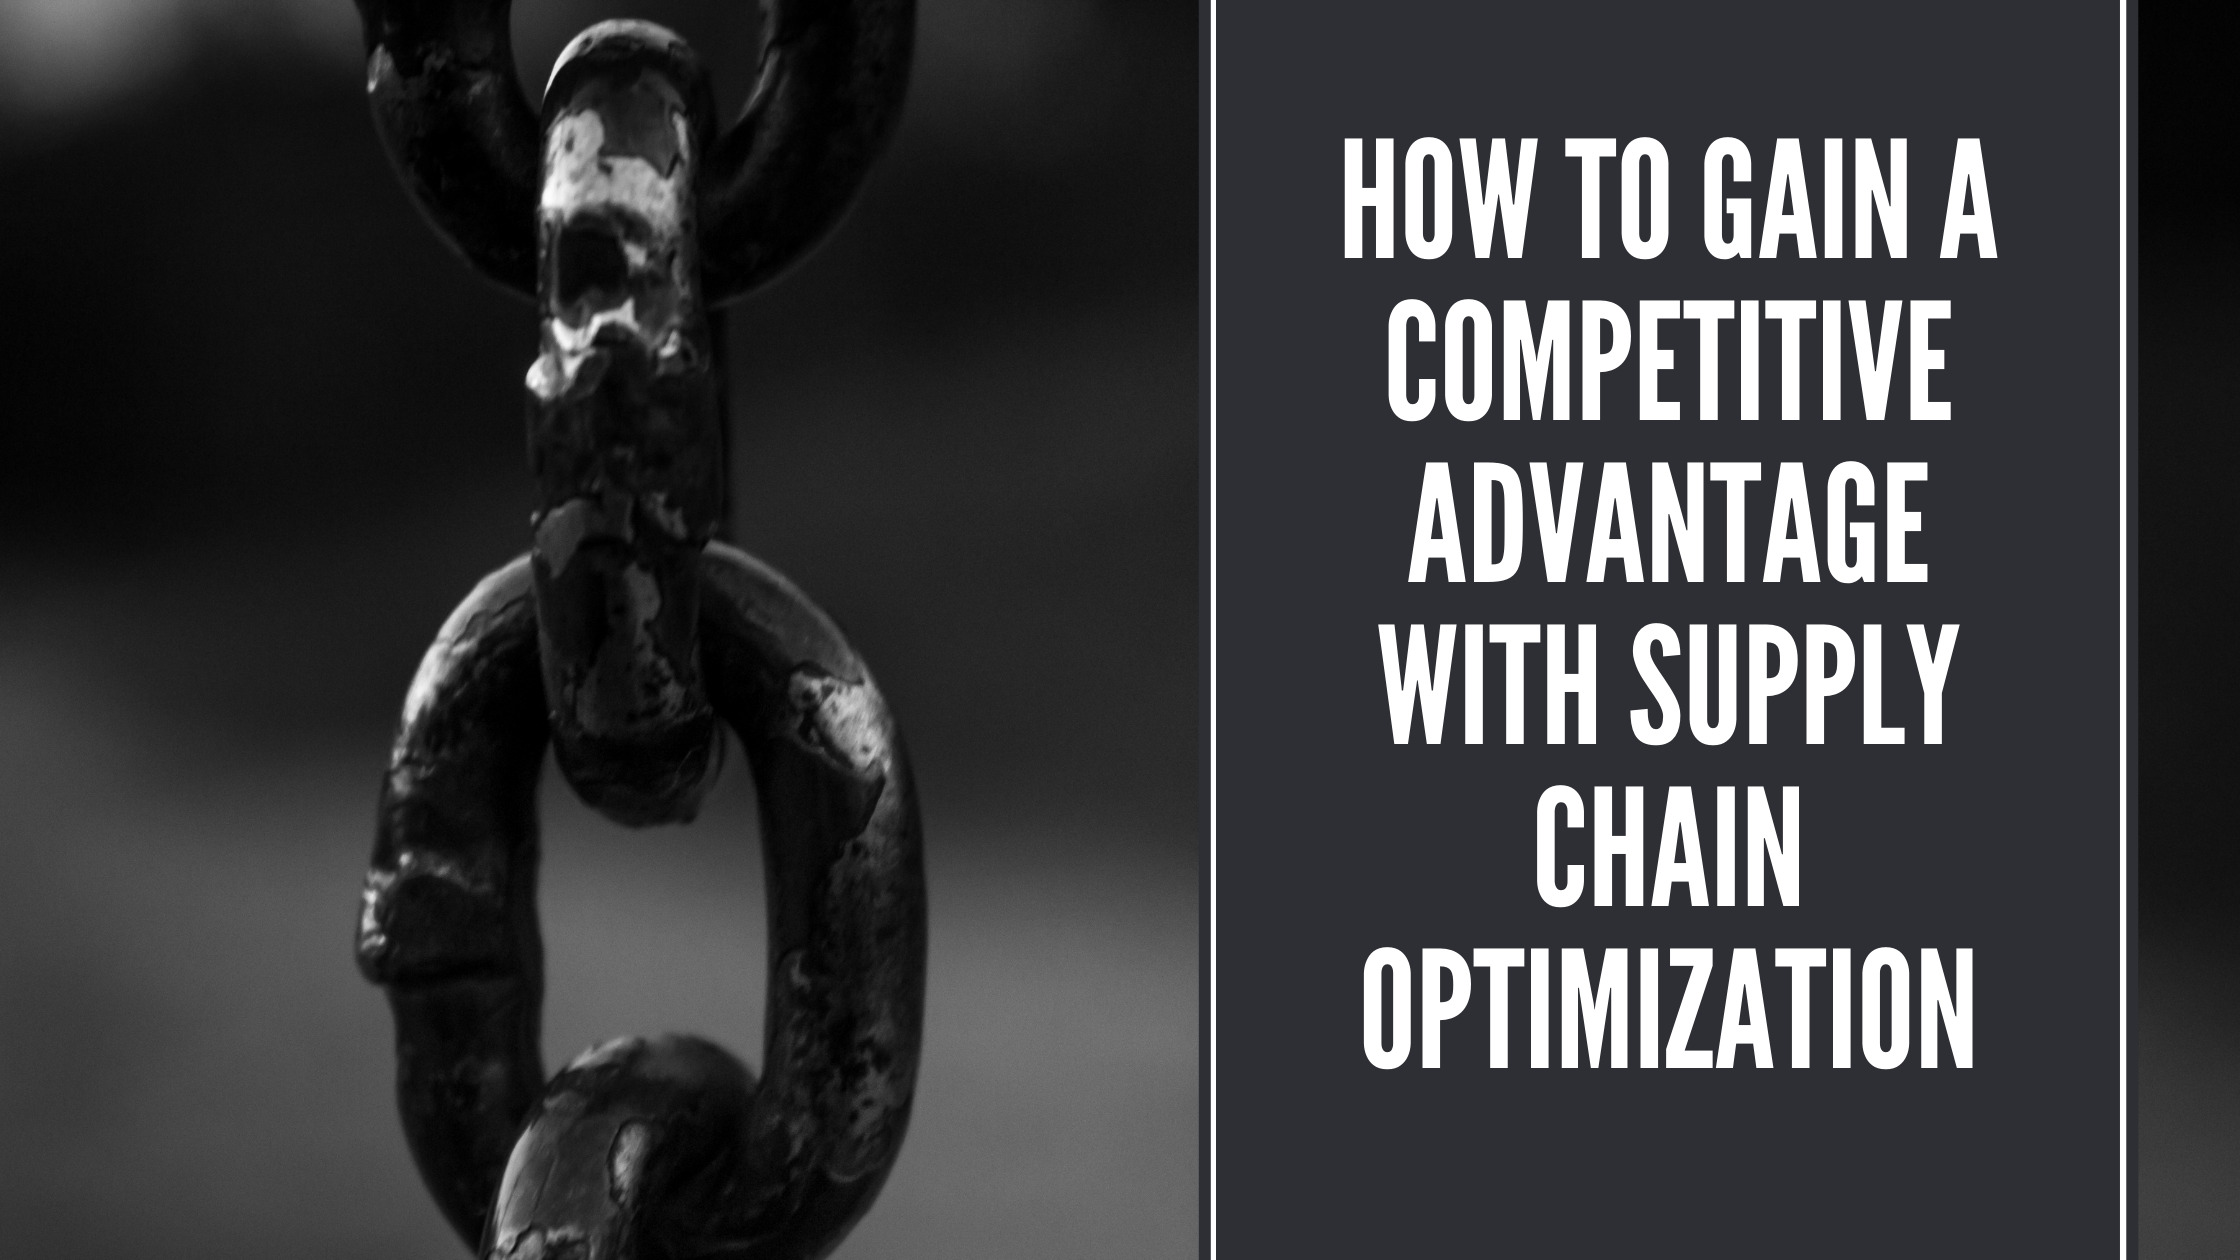 How to Gain a competitive advantage with supply Chain optimization